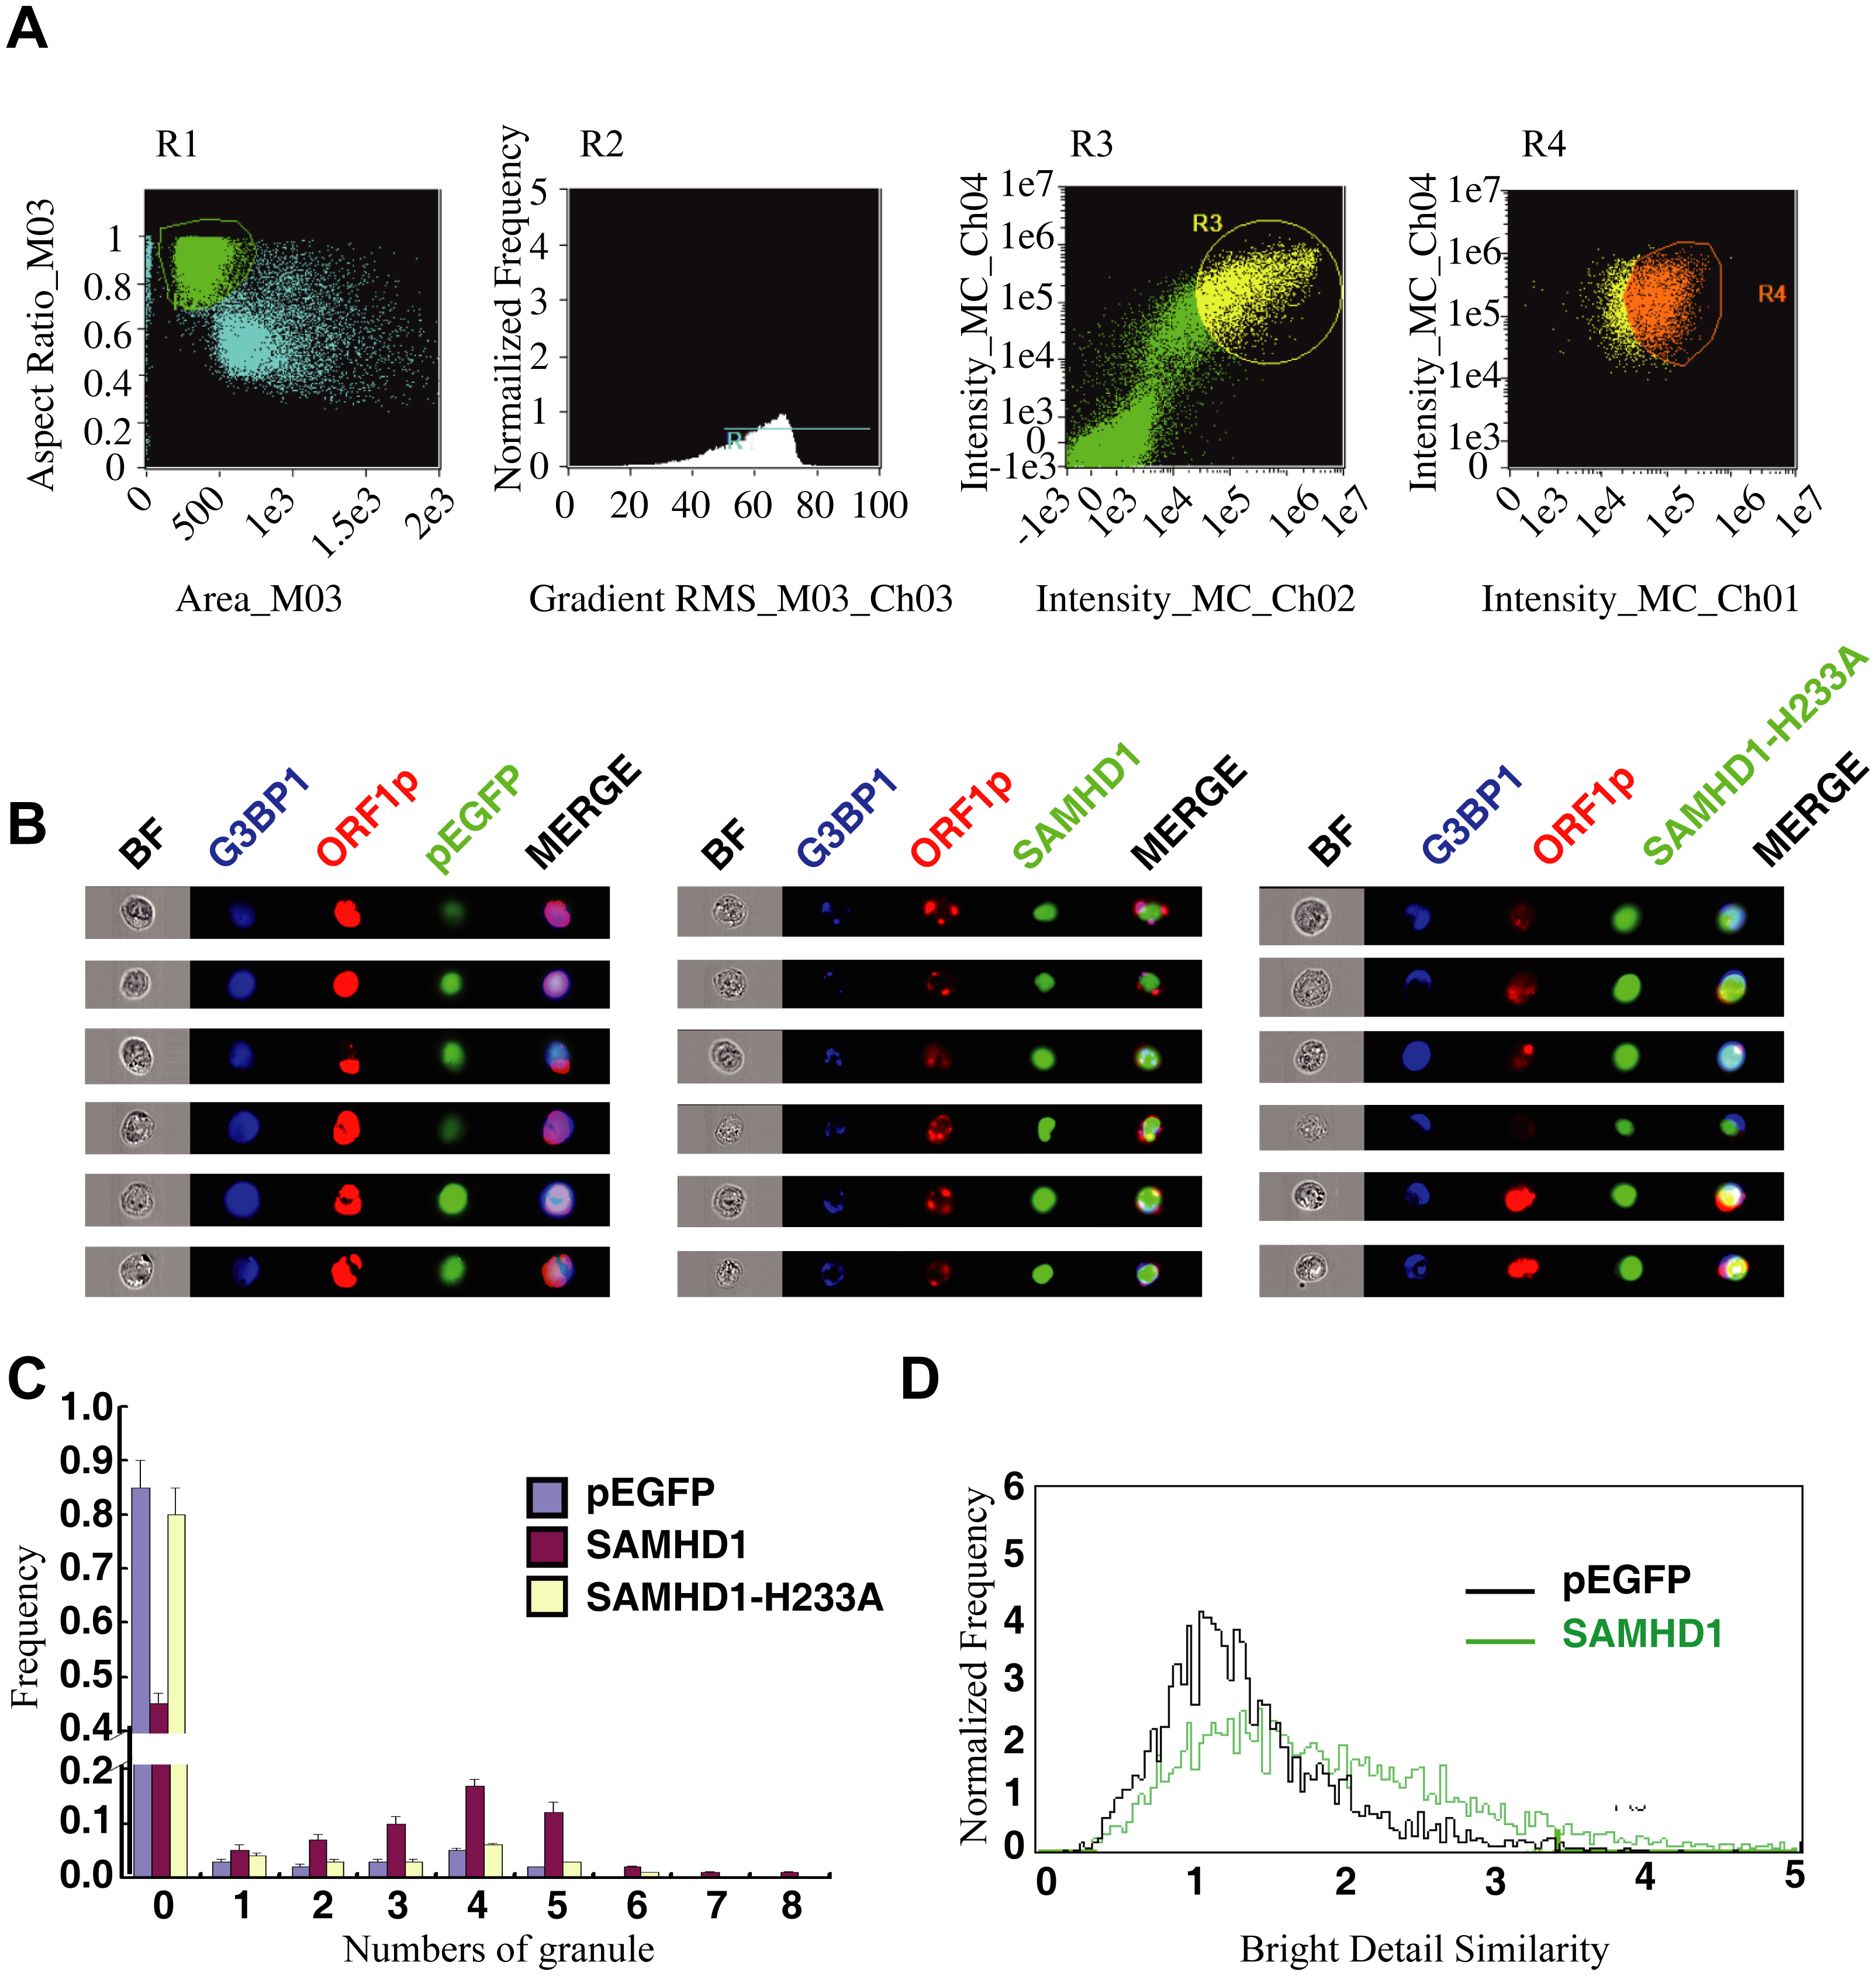 ImageStream flow cytometry was utilized to monitor the formation of stress granules and co-localization of SAMDH1 and ORF1p.